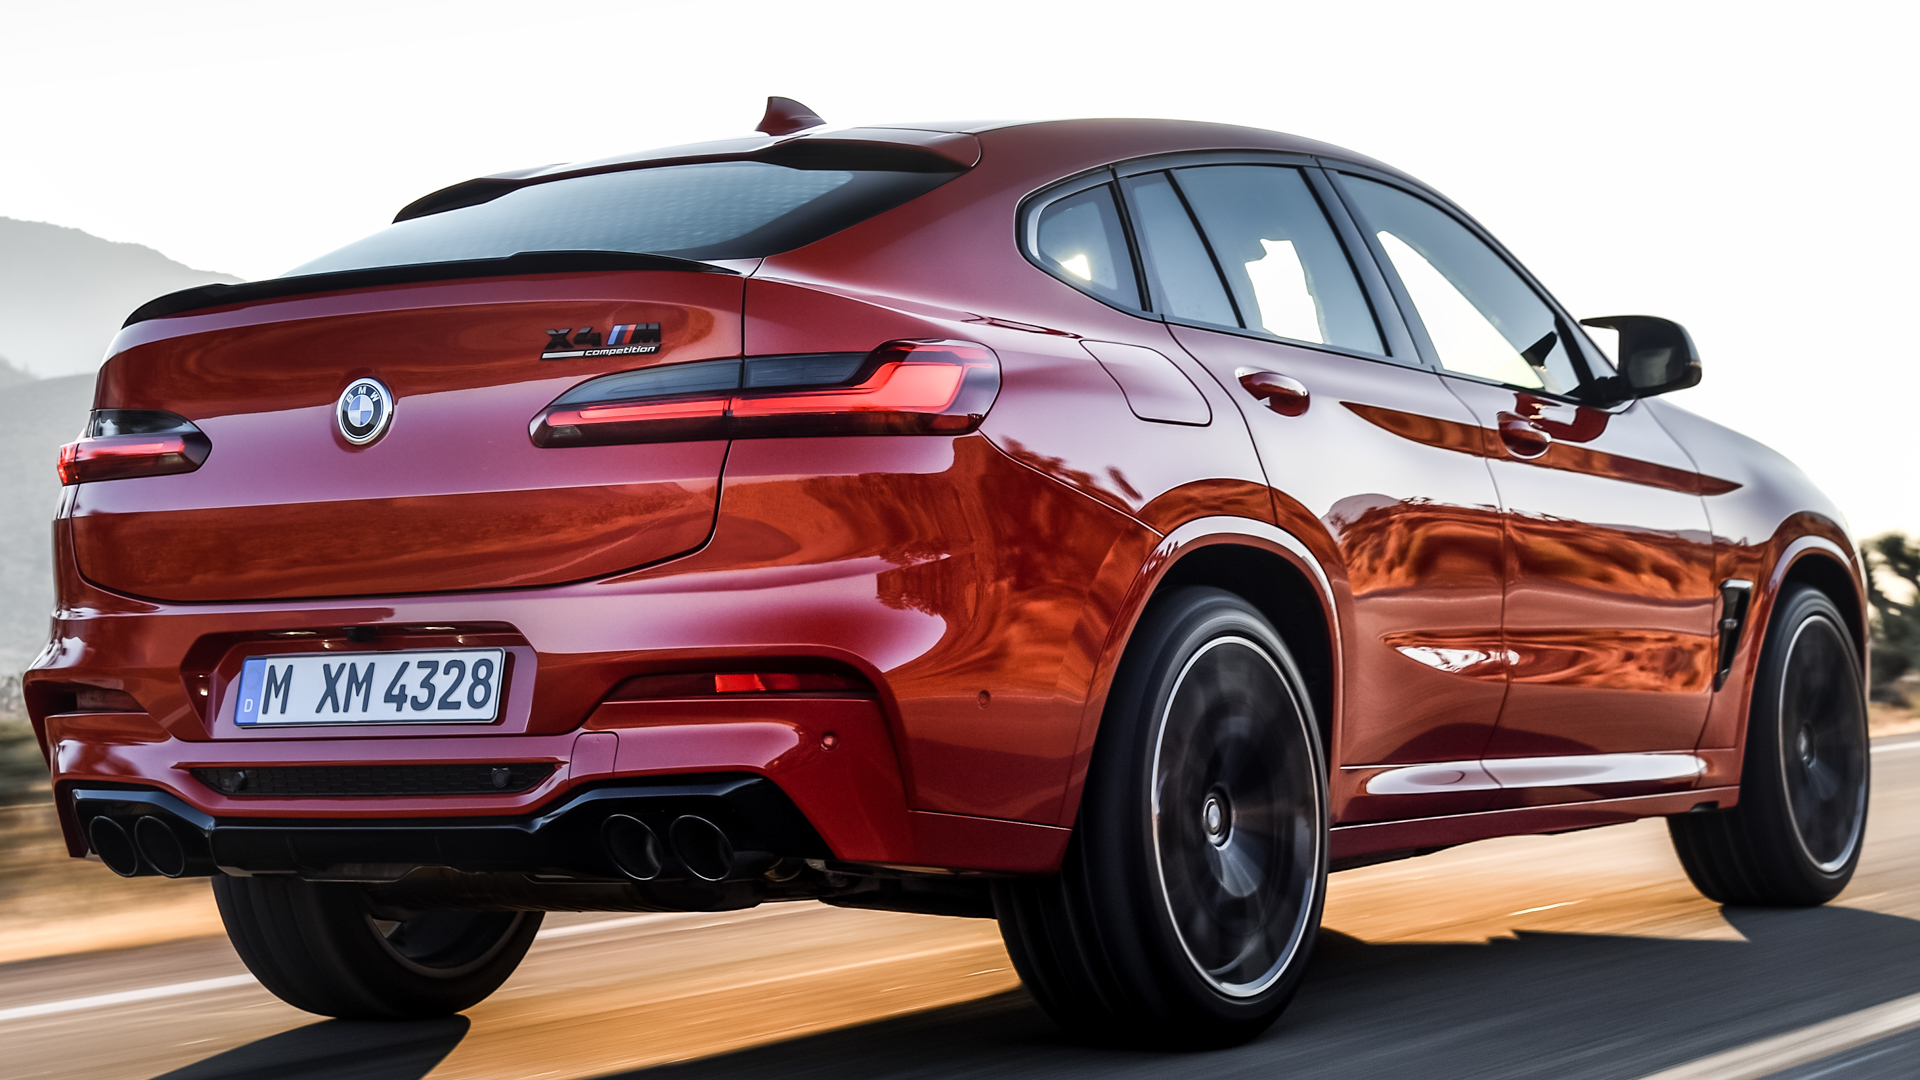 BMW X4 M Competition vs Mercedes AMG GLC63 S 11 of 11